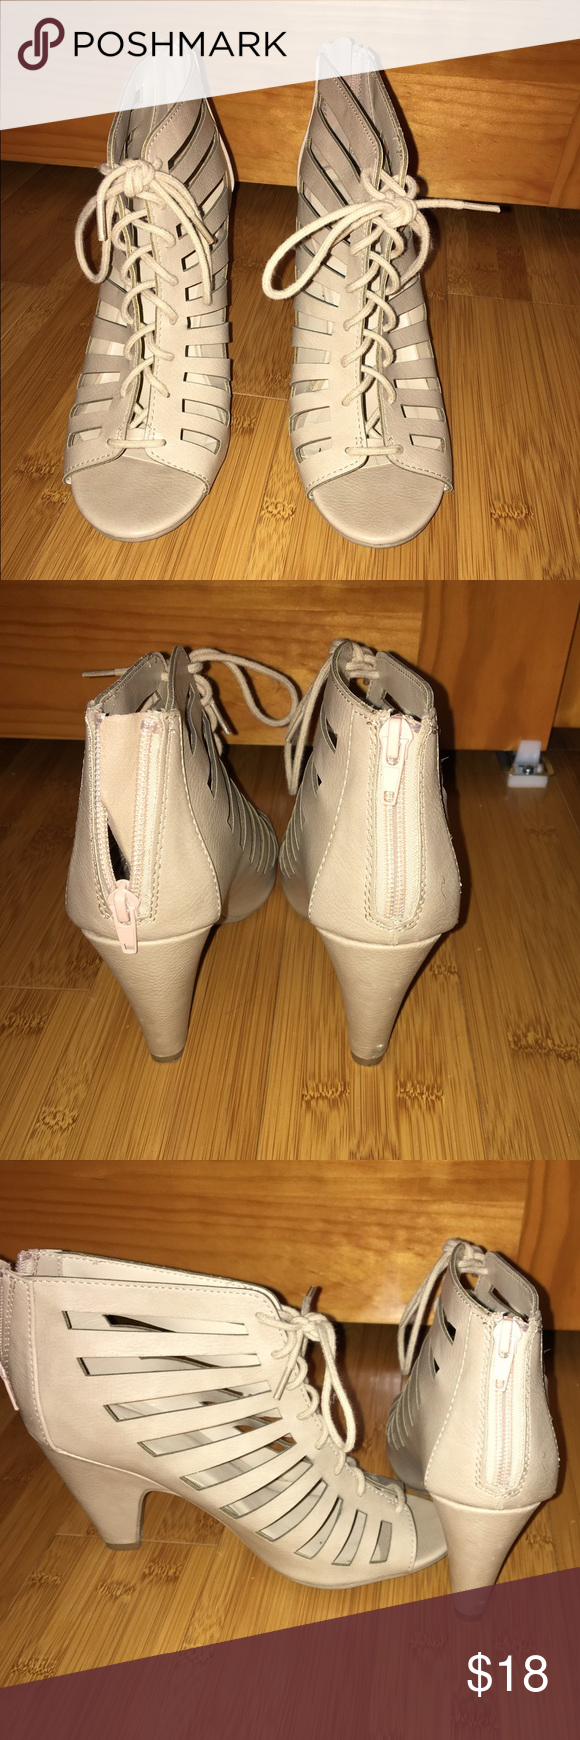 Lace Up Heels Size 8. Tan. Lace up front but zipper in the back is actual way of securing them. From Charlotte Russe. No box or receipt. Used twice before. Does have some scuffing--if you want pictures let me know! Perfect with jeans for spring! Charlotte Russe Shoes Heels